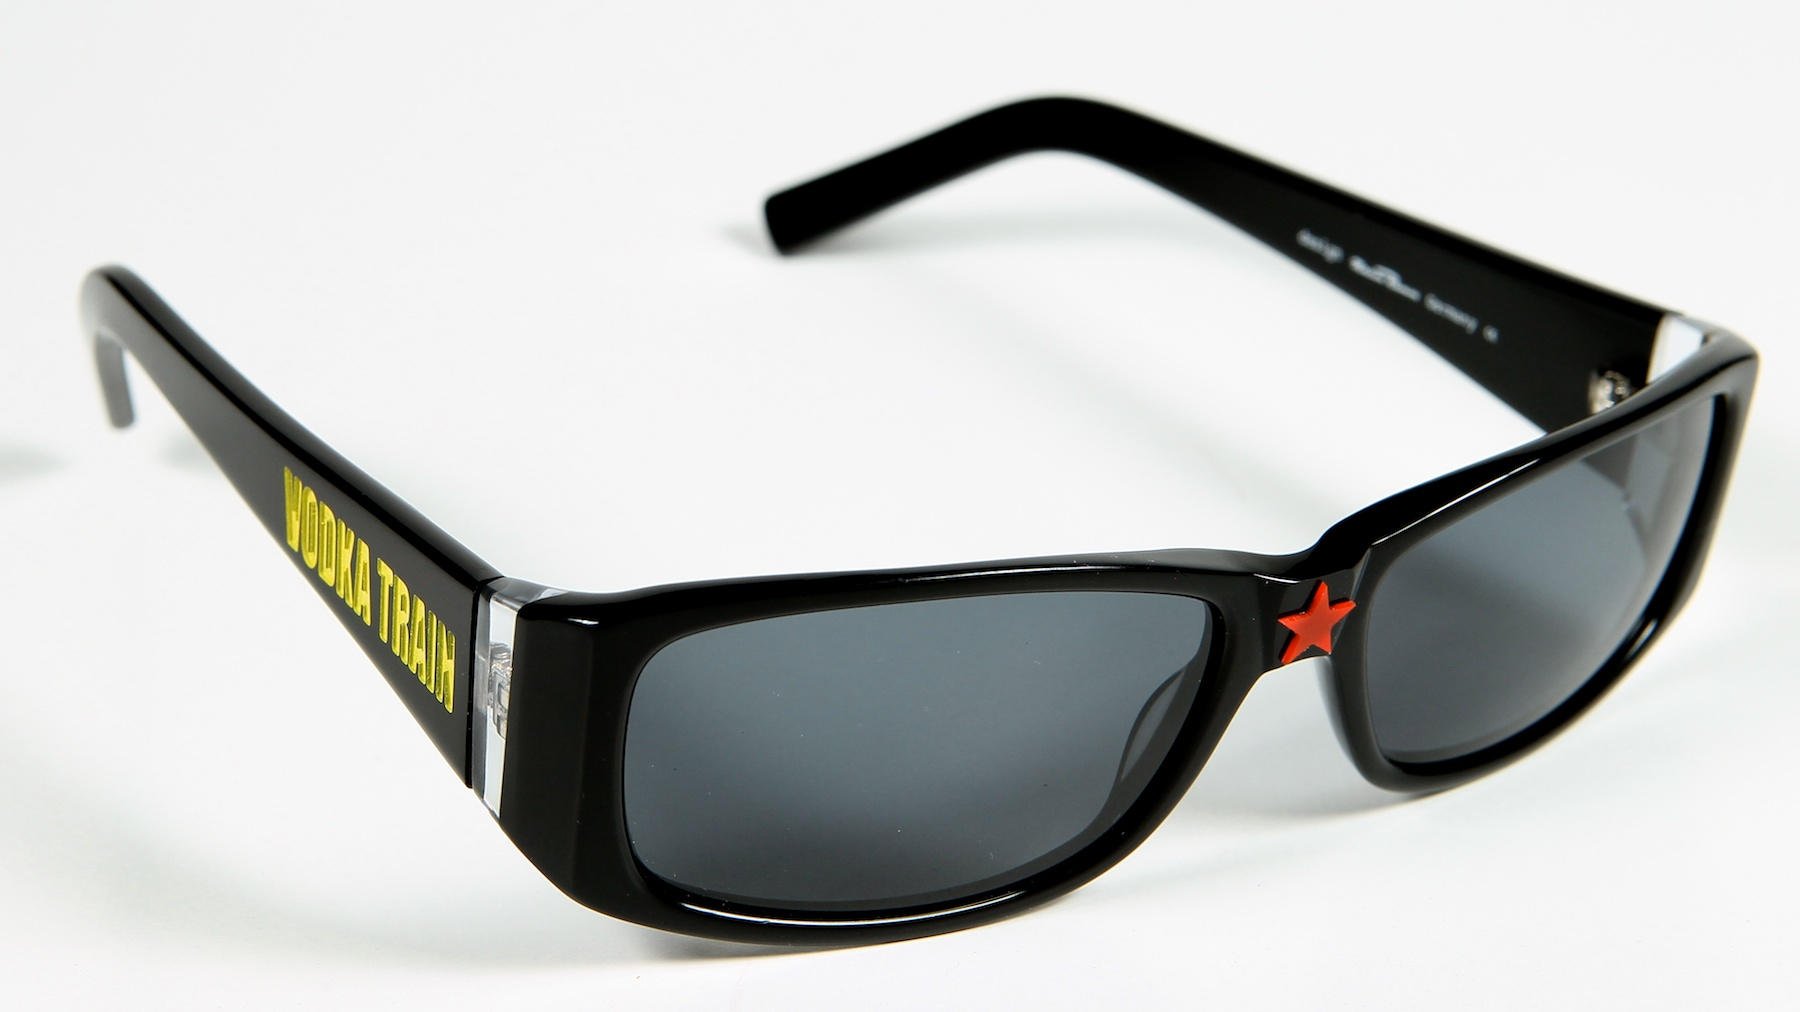 Vodkatrain Sunglasses_011